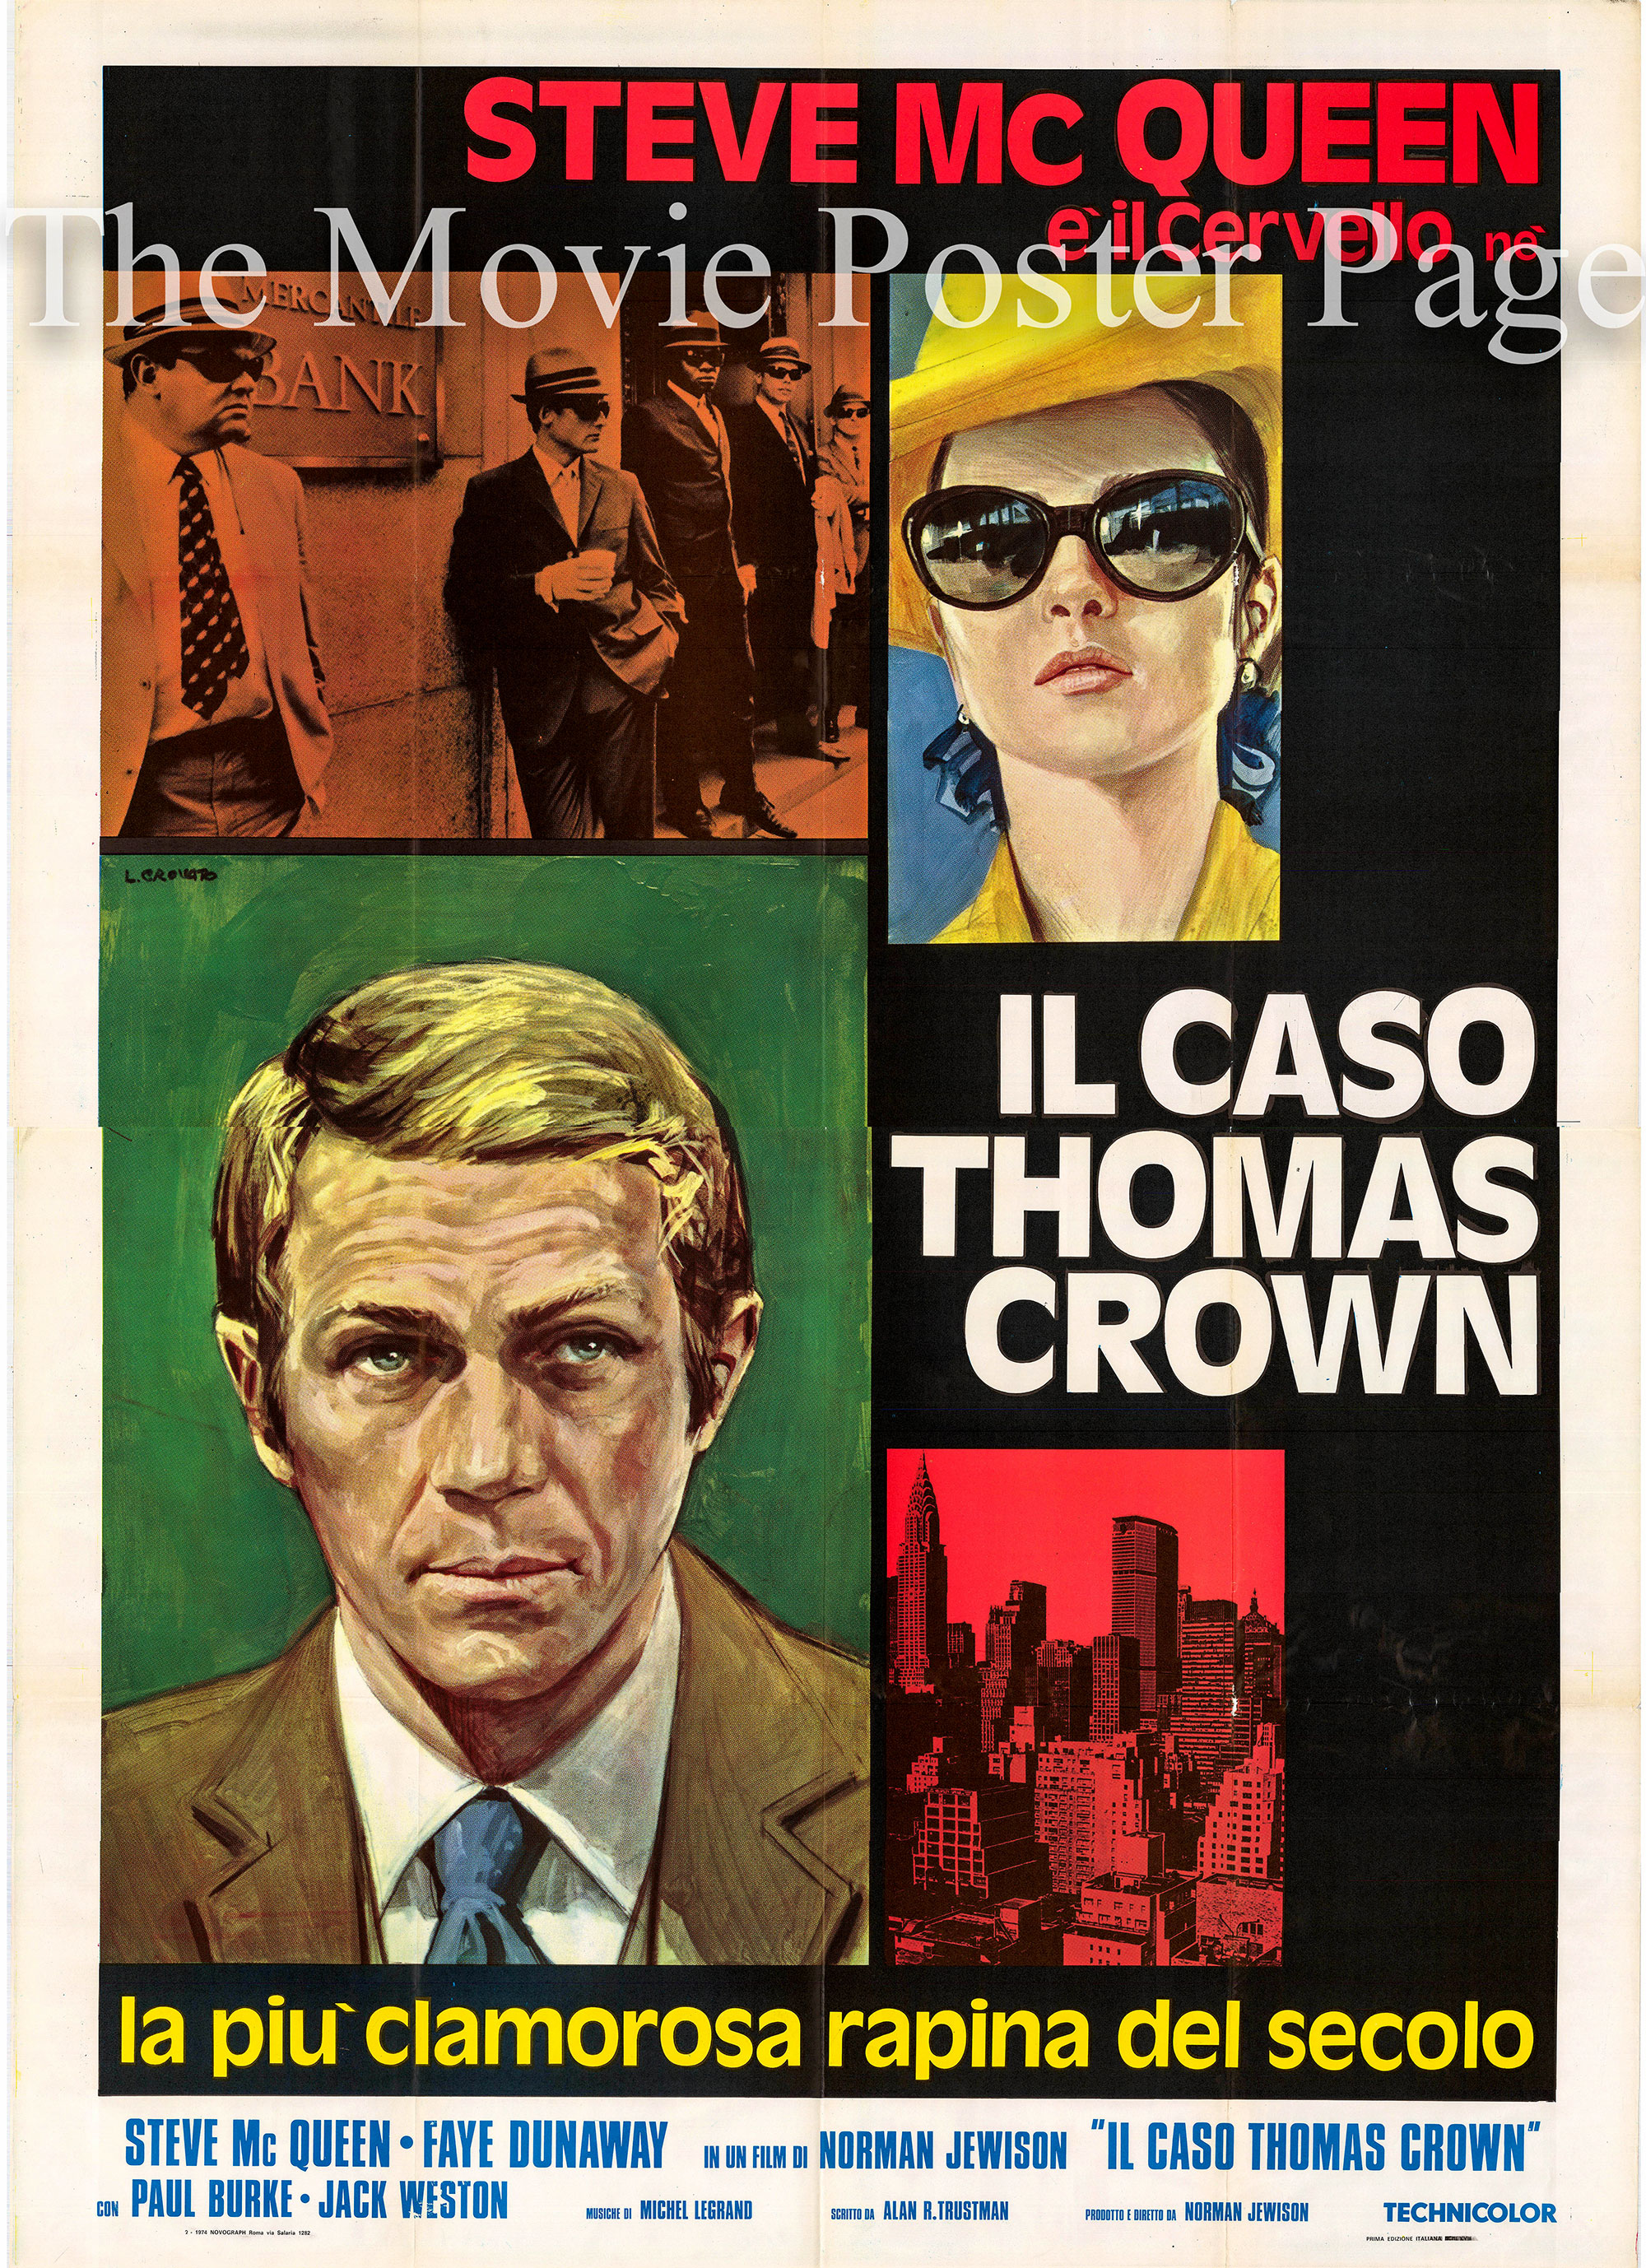 Pictured is an Italian four-sheet promotional poster for eh 1968 Norman Jewison Film The Thomas Crown Affair starring Steven McQueen and Faye Dunaway.